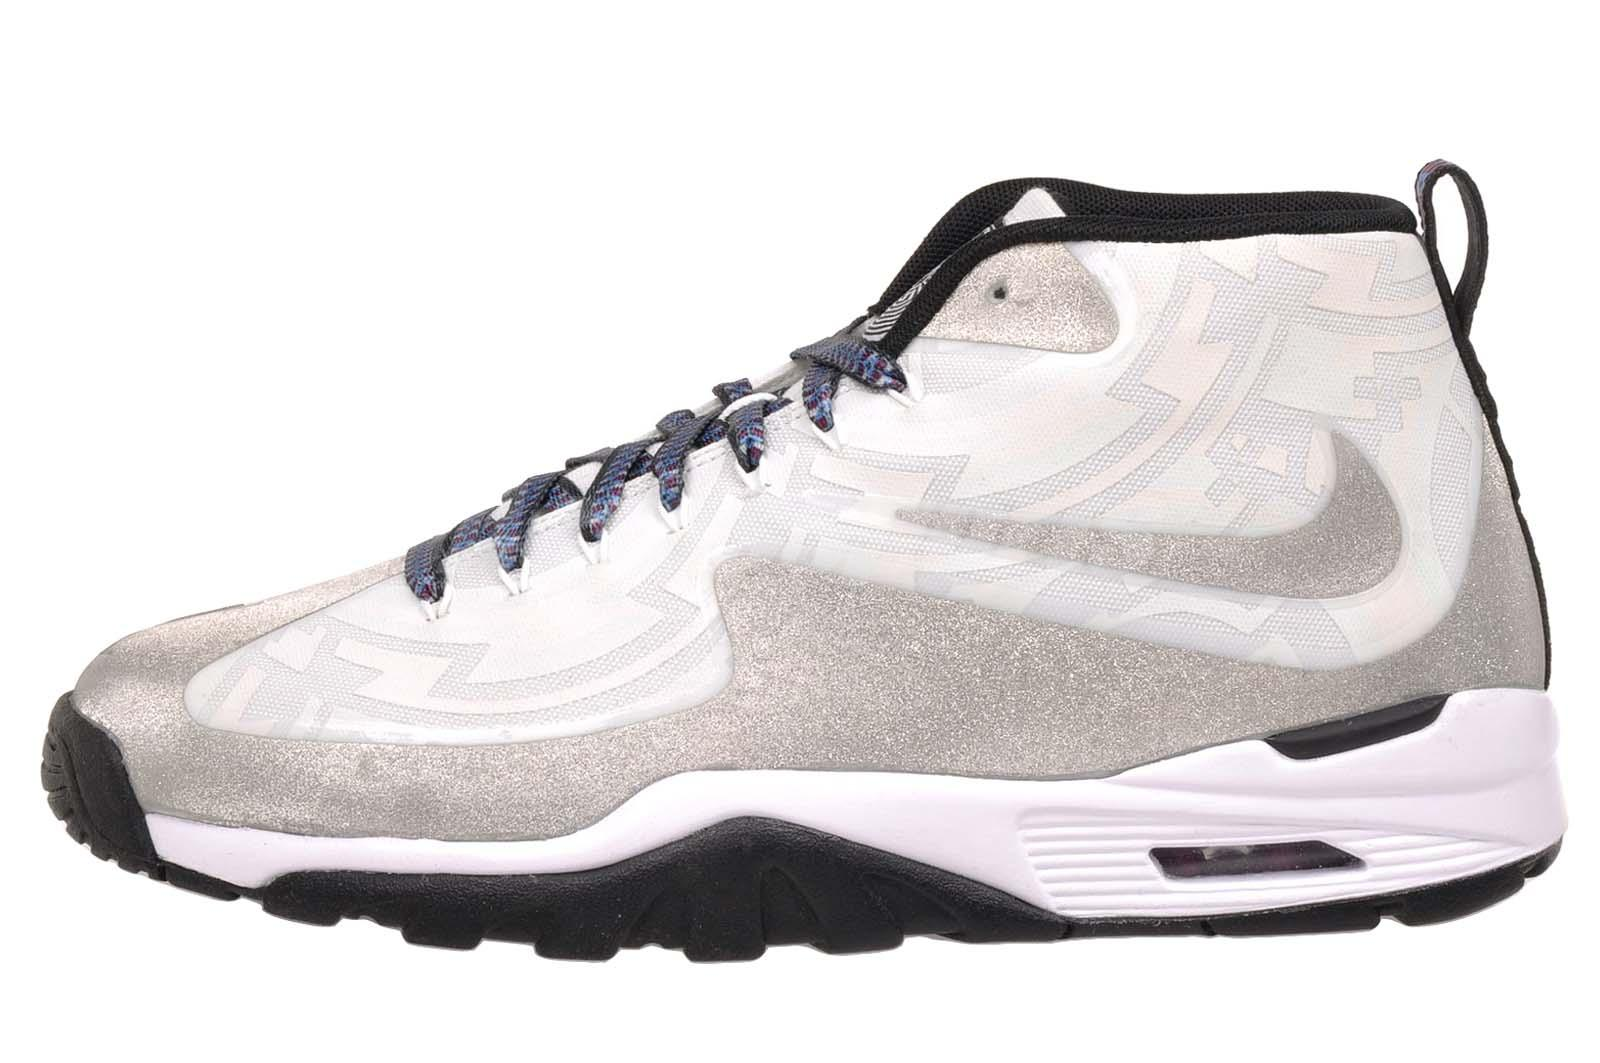 1bfb96967f4 Nike Air Vapor Untouchable